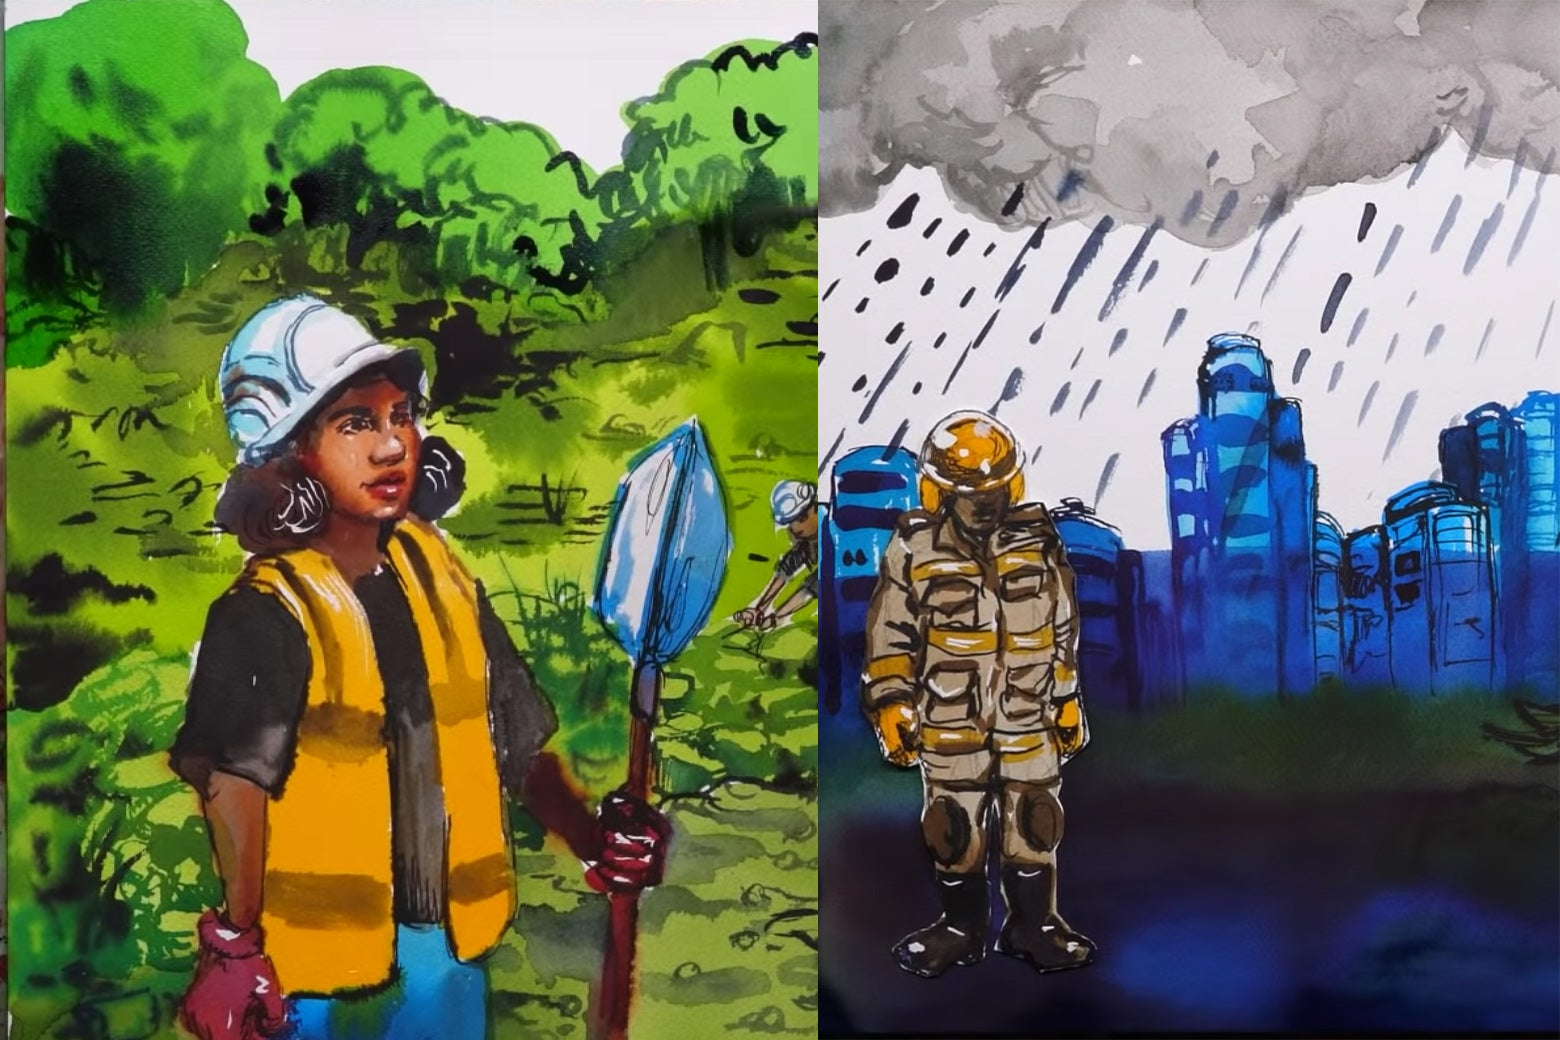 Screengrabs of two images from the video: On the left, a woman of color stands while wearing a hard hat and holding a tool in a lush green landscape. On the right, an industrialized shadowy figure stands in a bleak rainstorm.